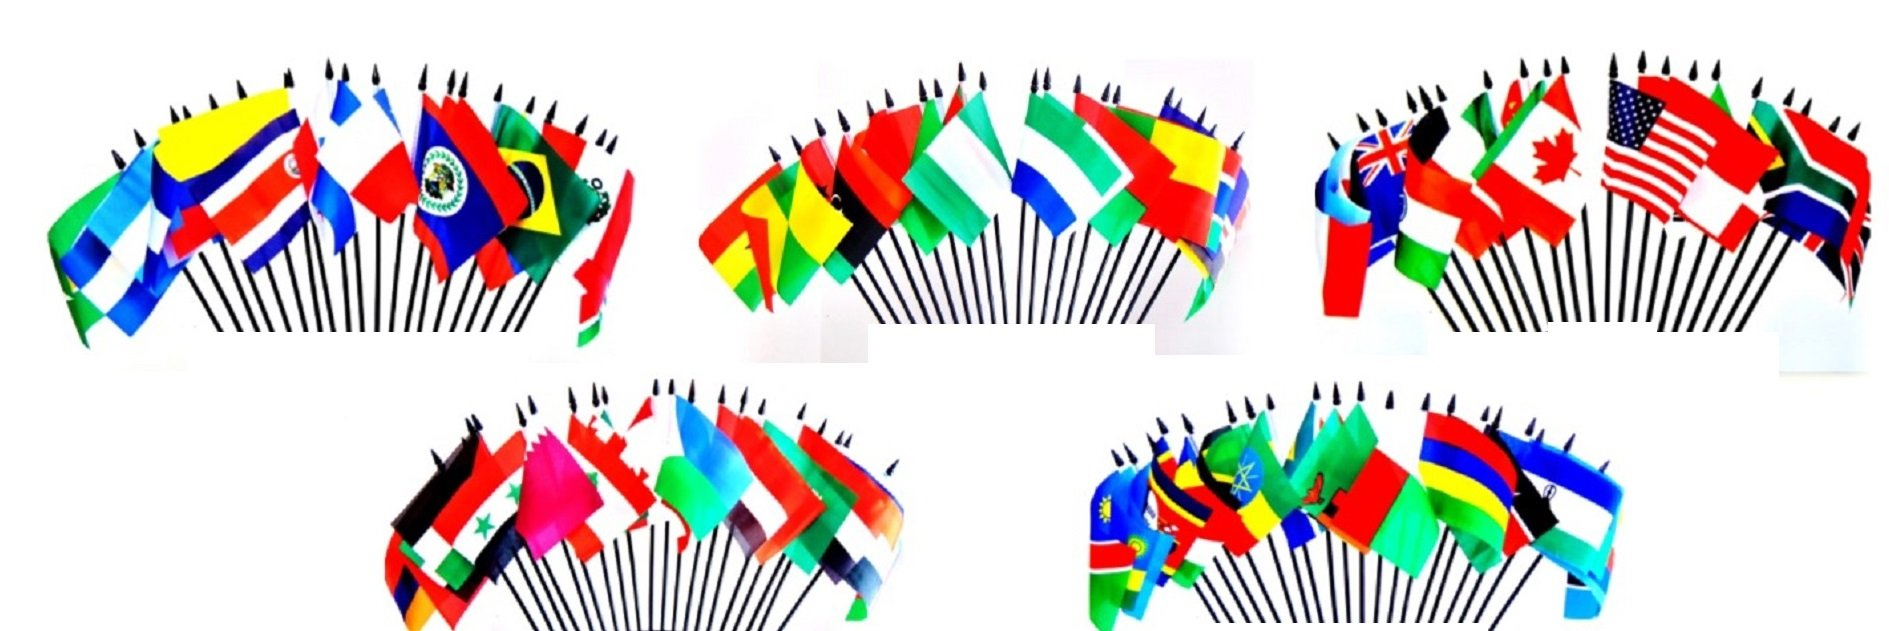 100 WORLD FLAG SET--100 Polyester 4''x6'' Flags, One Flag for 100 Popular International Olympic and World Cup Countries, 4x6 Miniature Desk & Table Flags, Small Mini Stick Flags